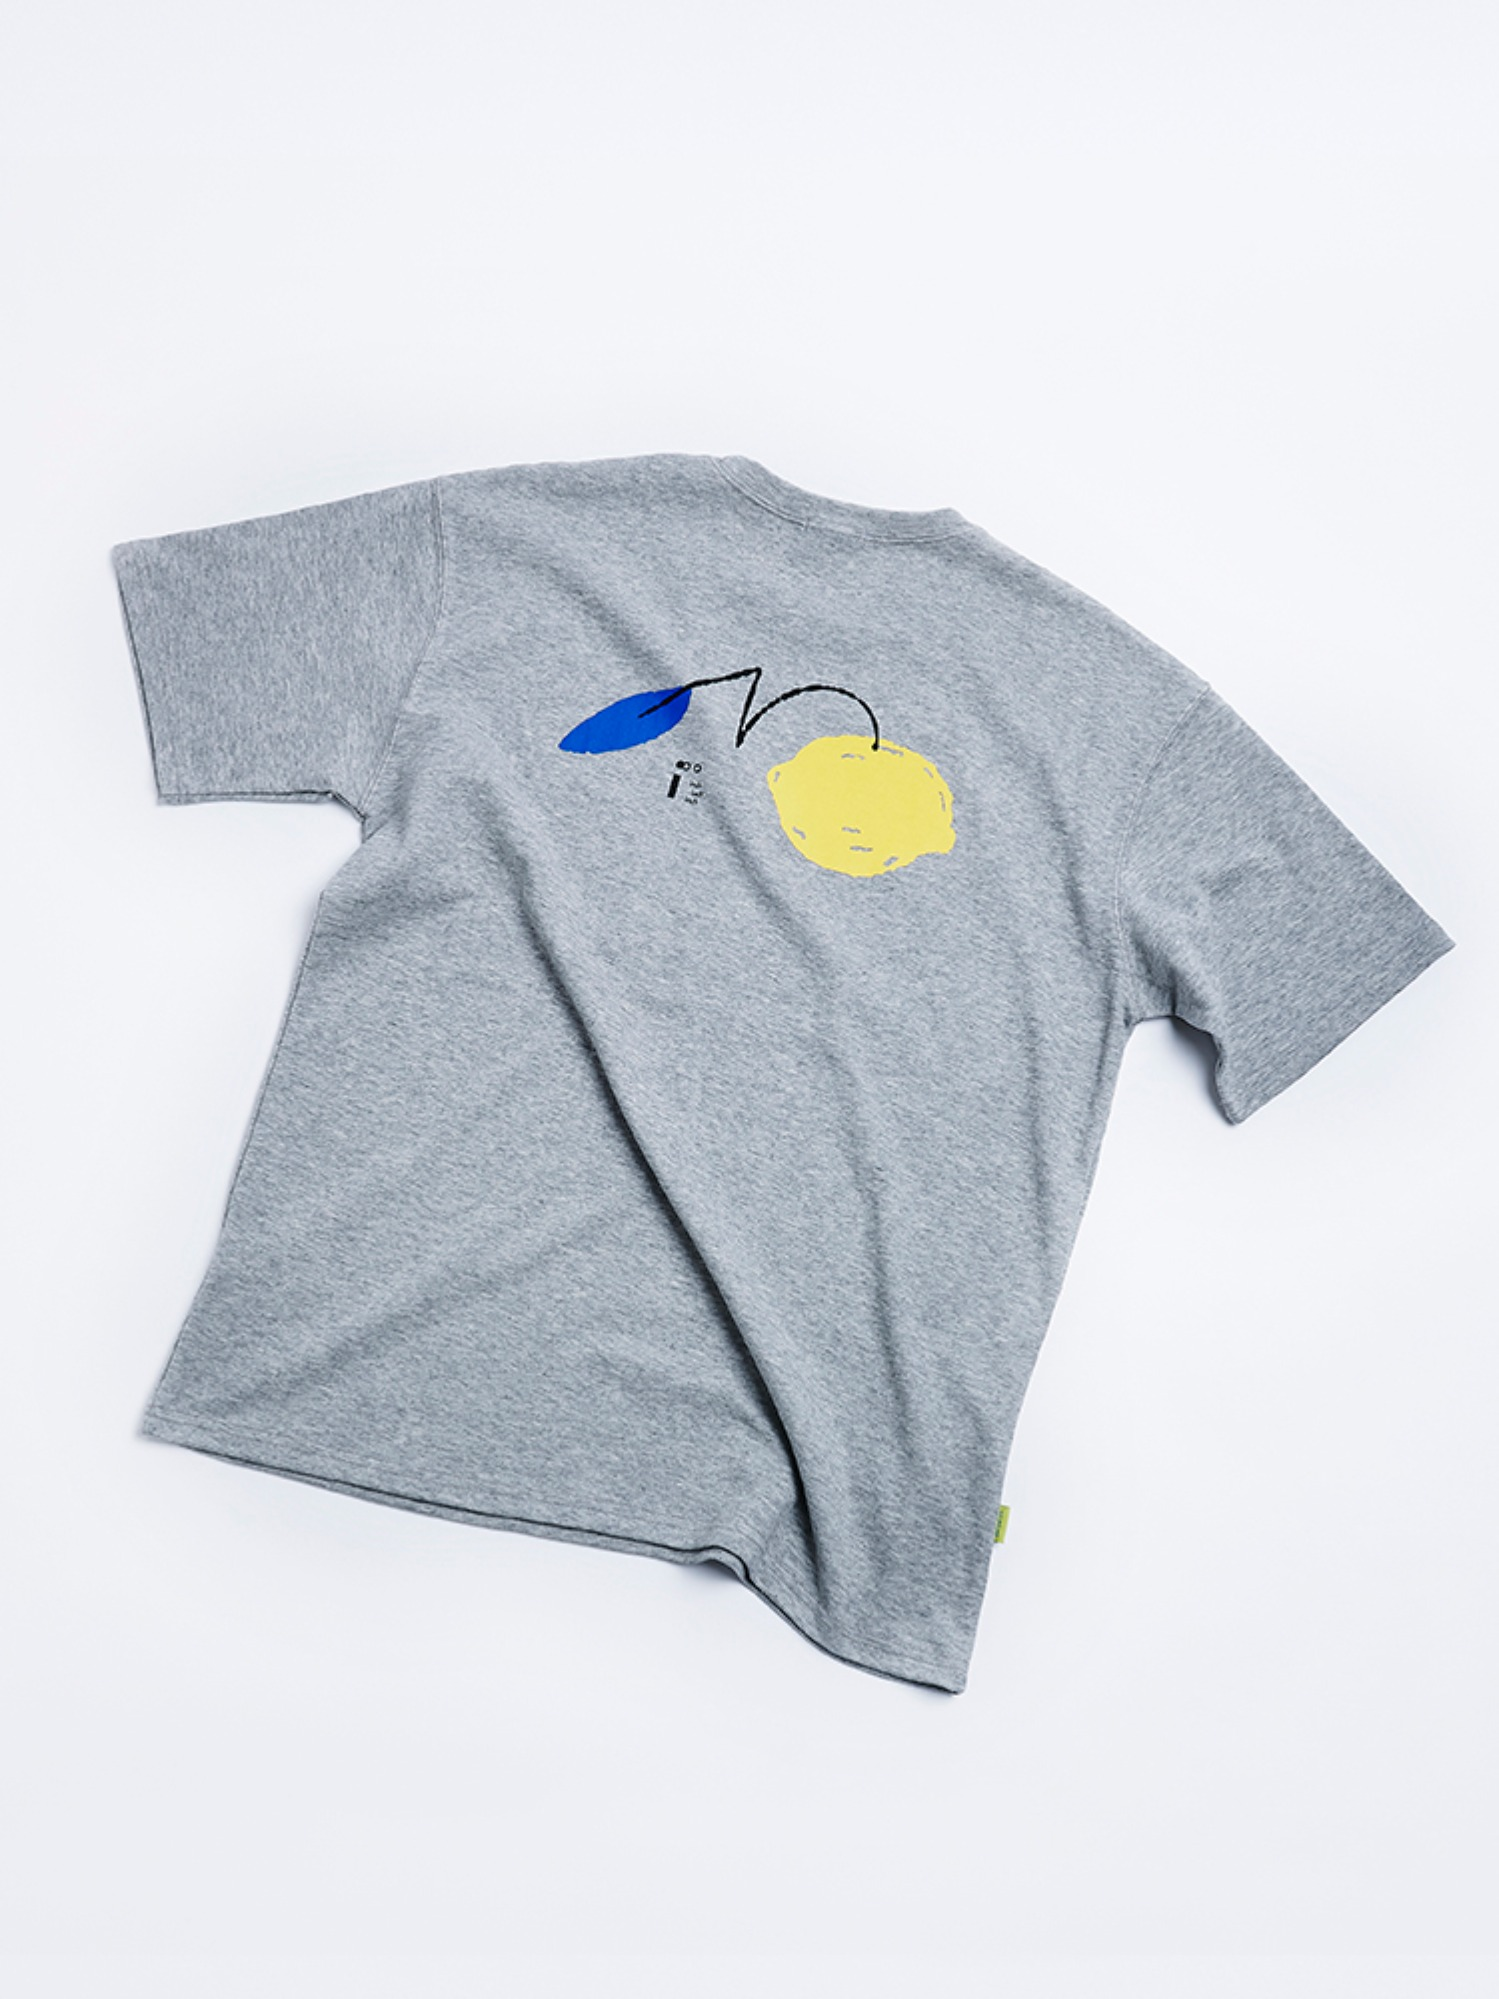 Lemon Solo T shirt (Heather Gray)